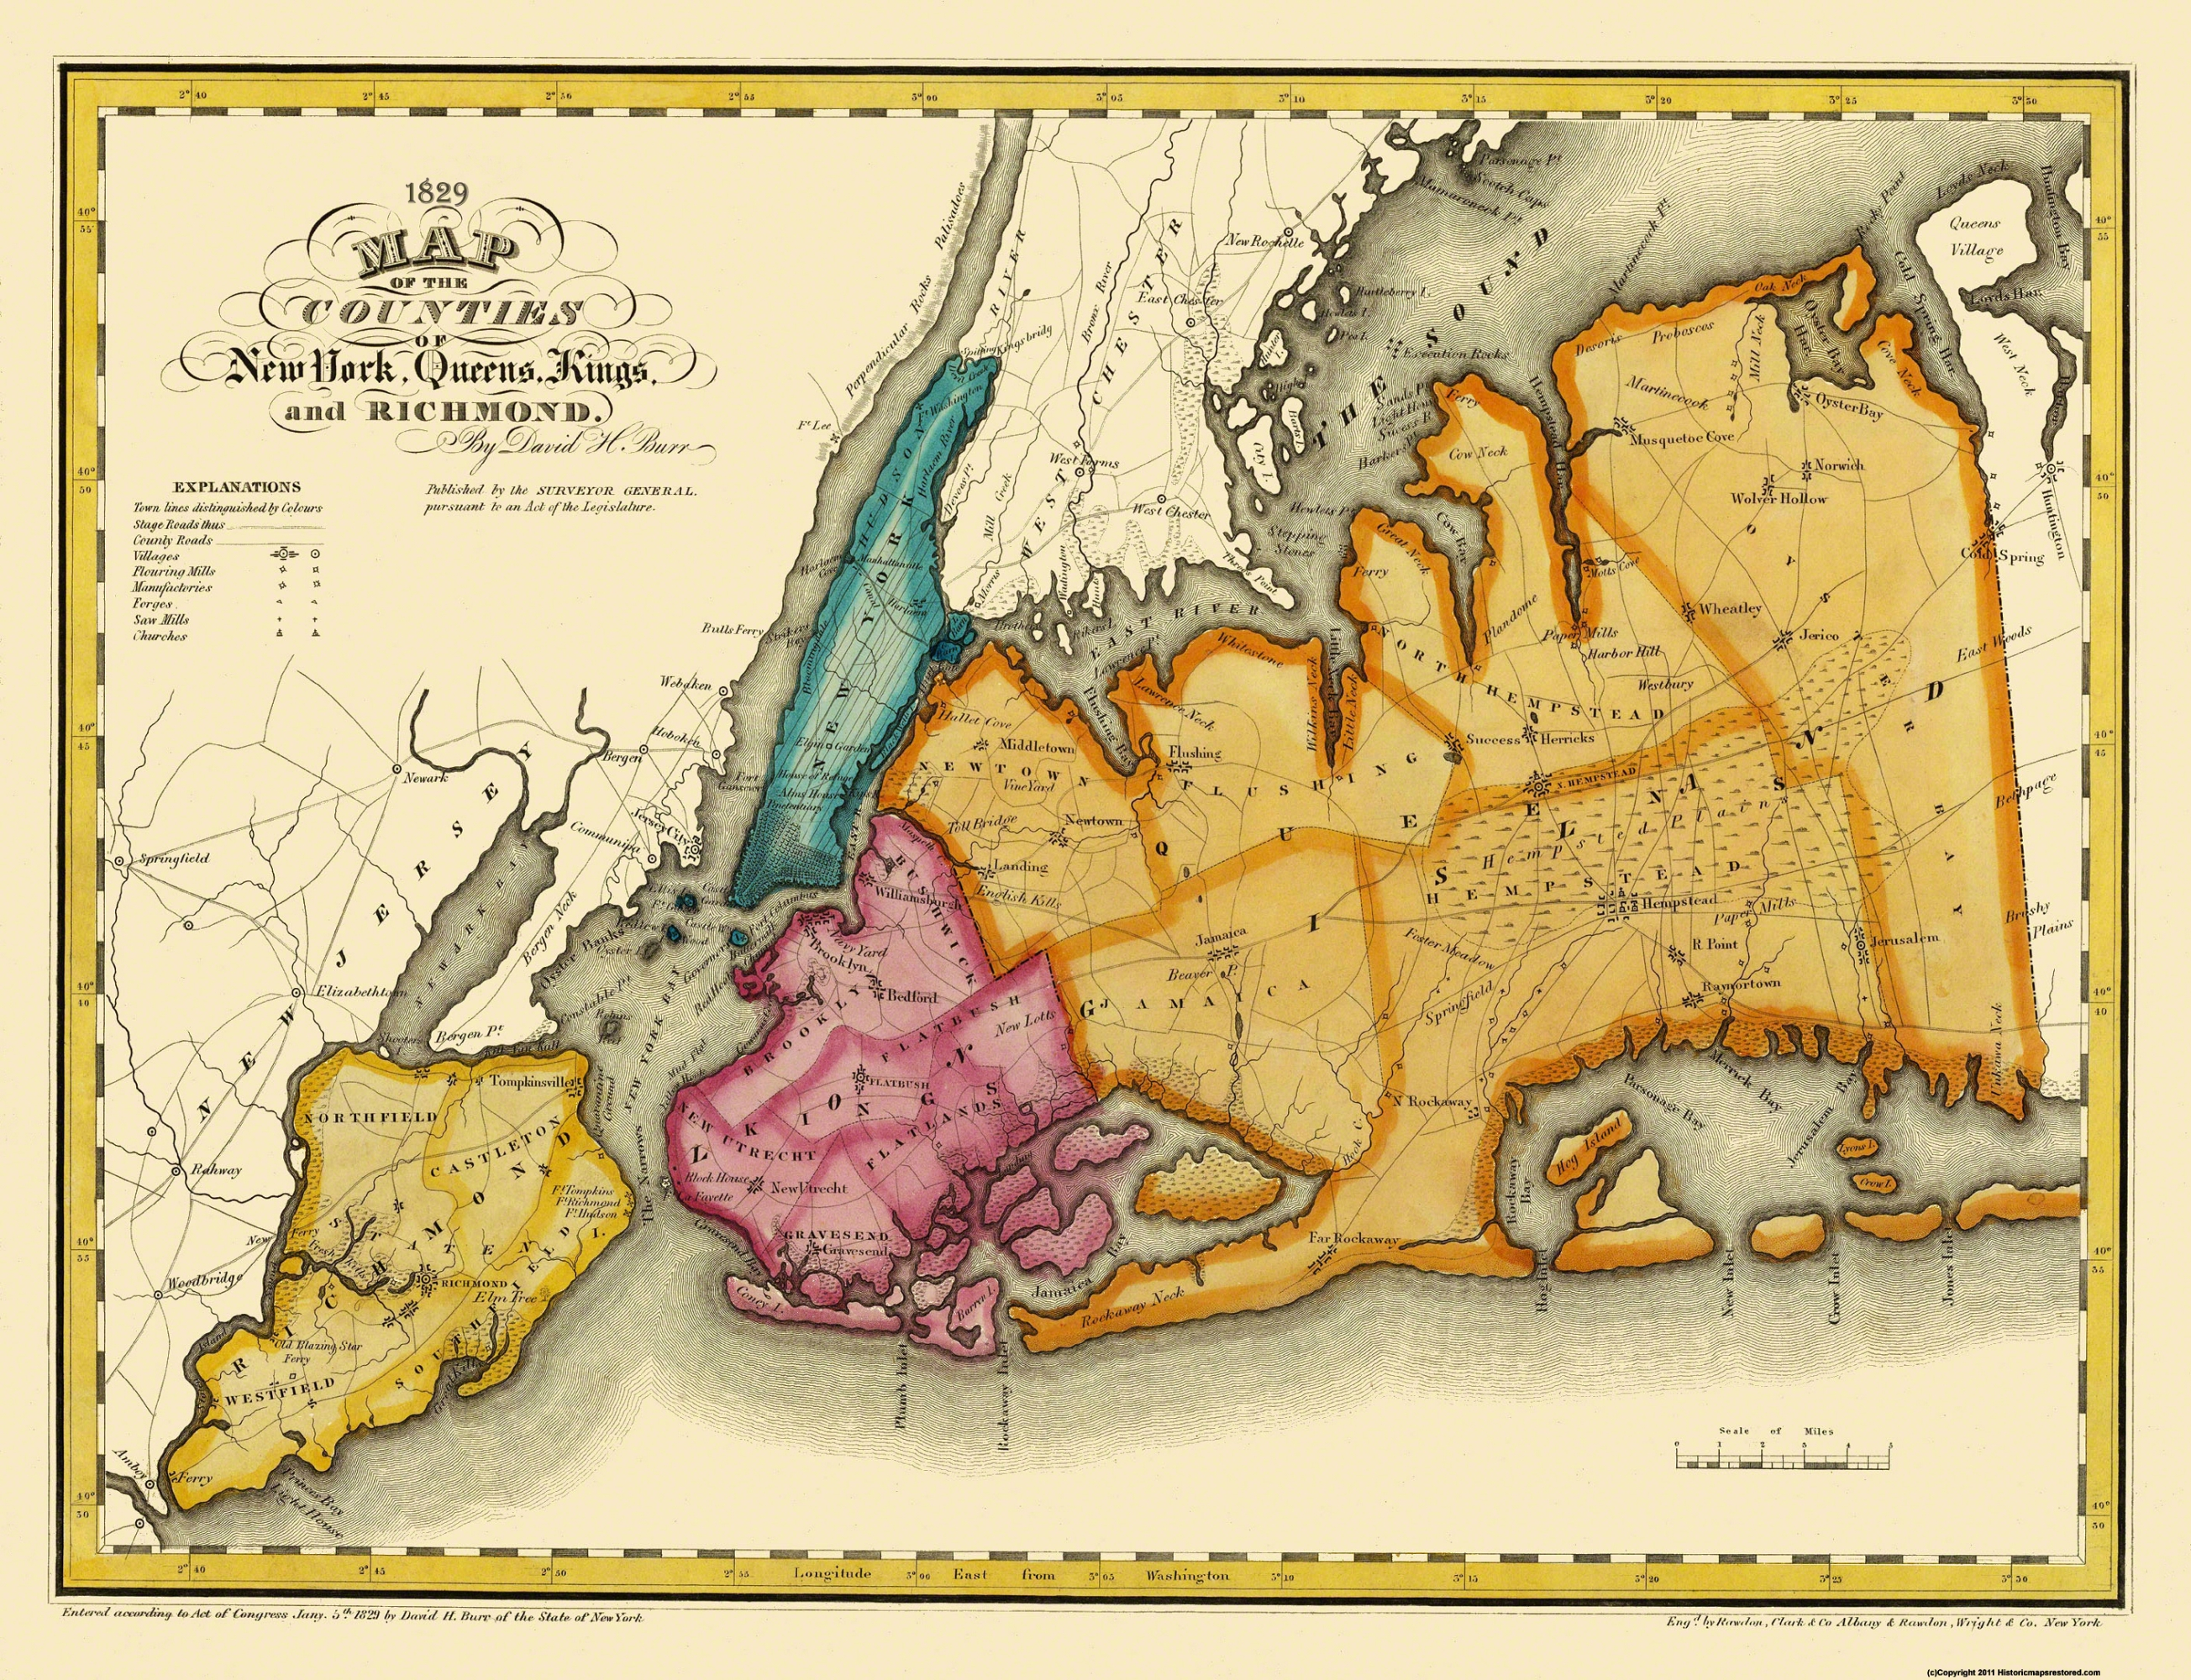 Old Map New York Queens Kings Richmond New York - 1829 us map